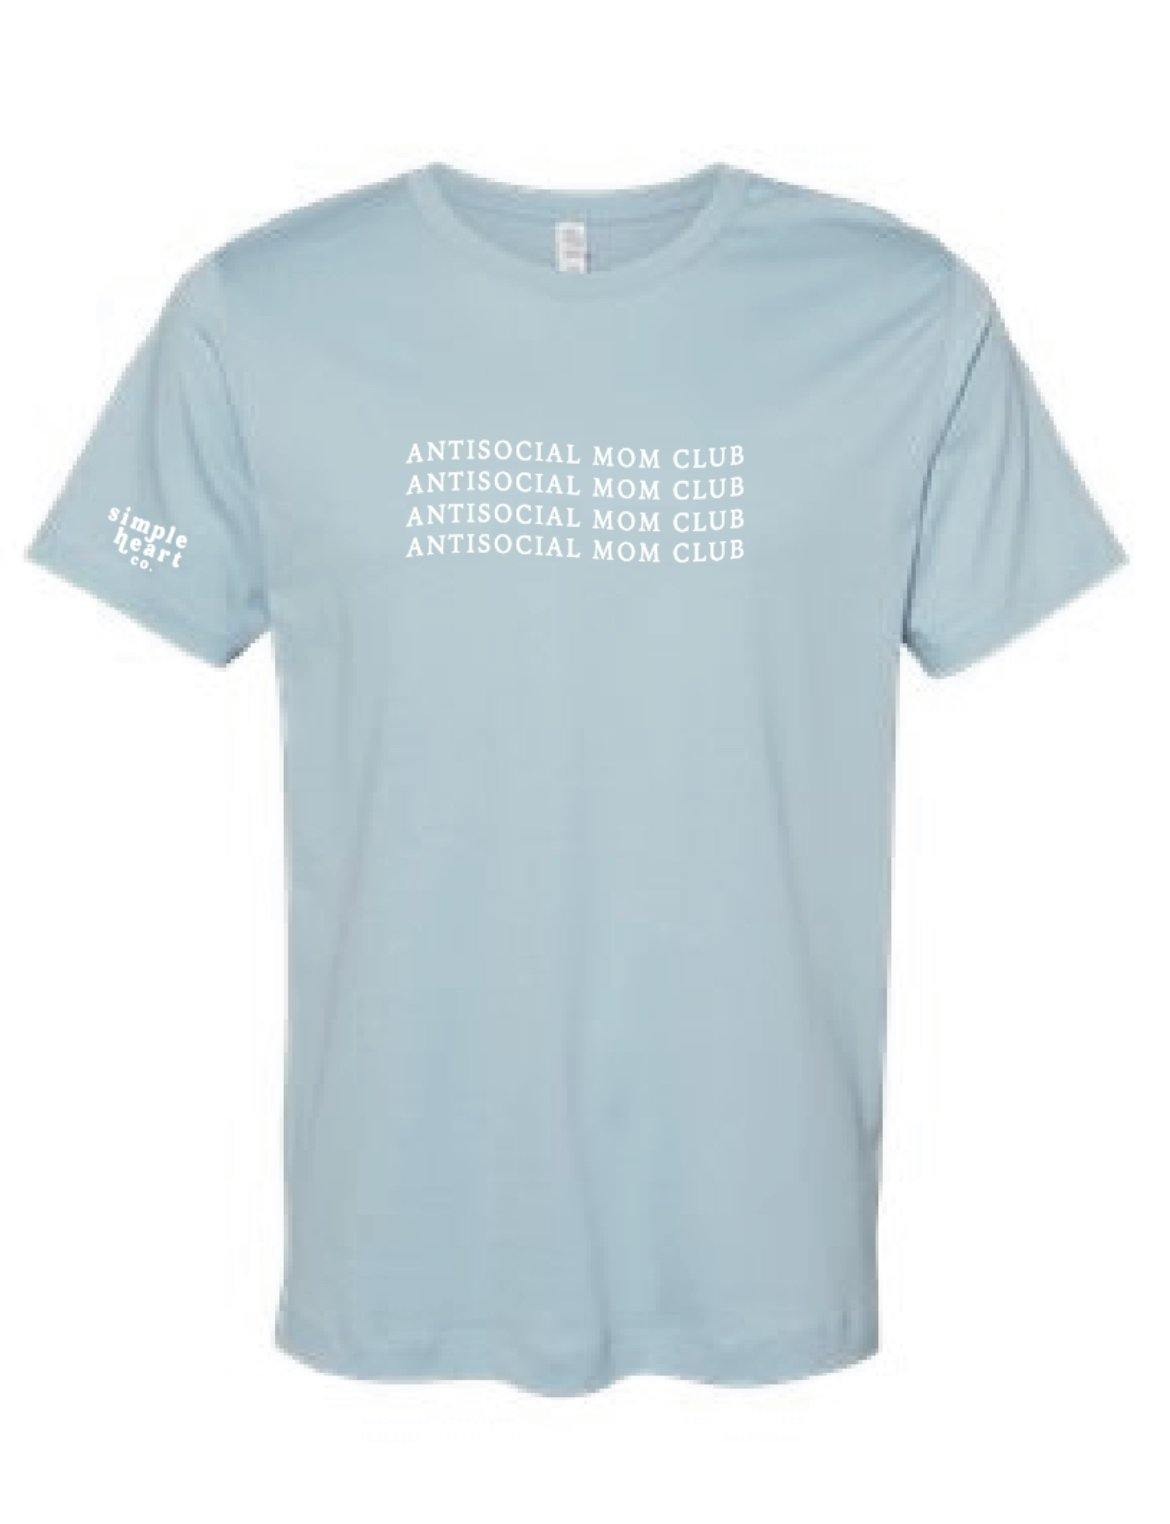 antisocial mom club t shirt